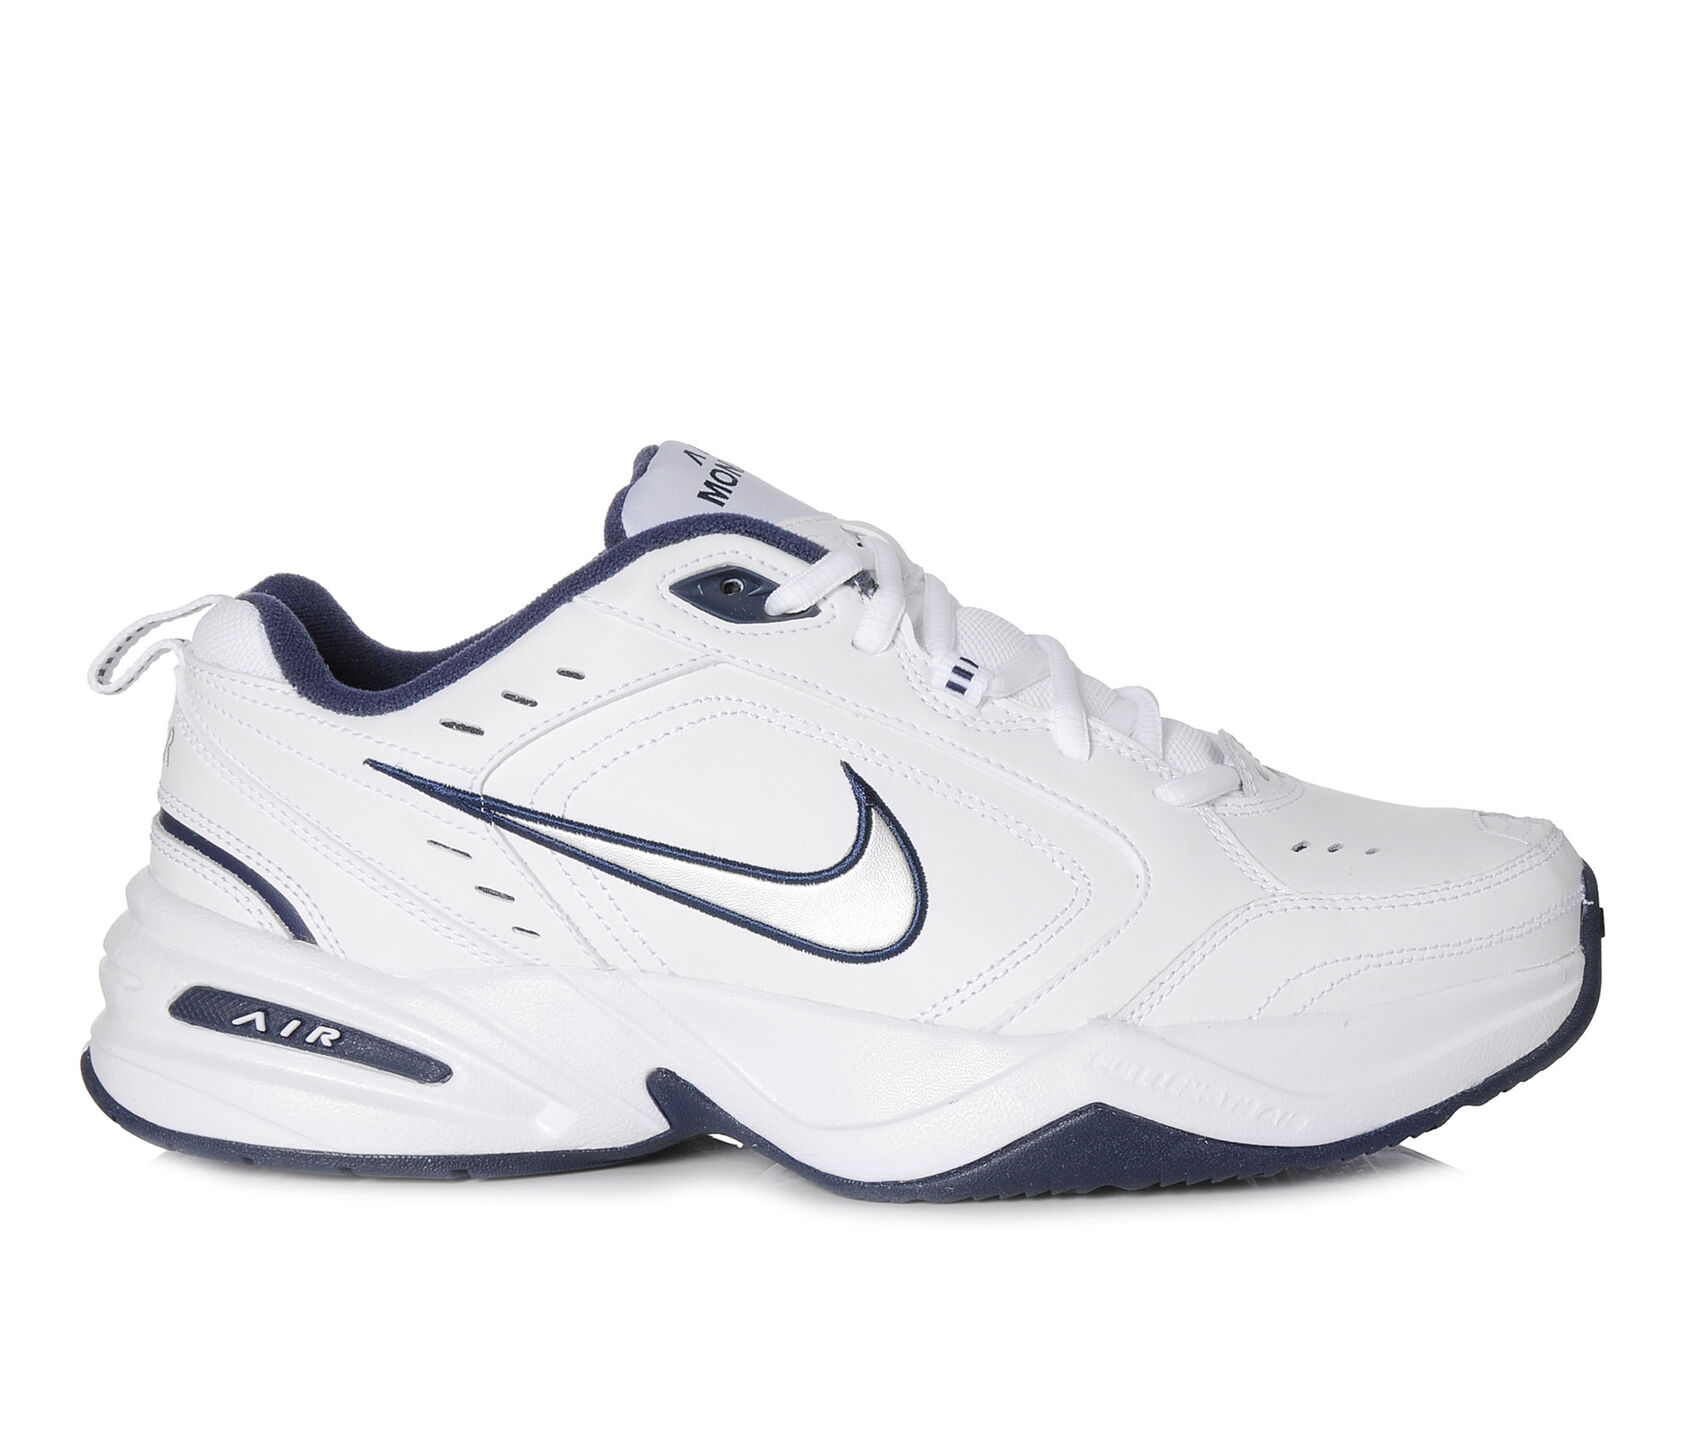 2269a250b2c8cc ... Nike Air Monarch IV Training Shoes. Previous